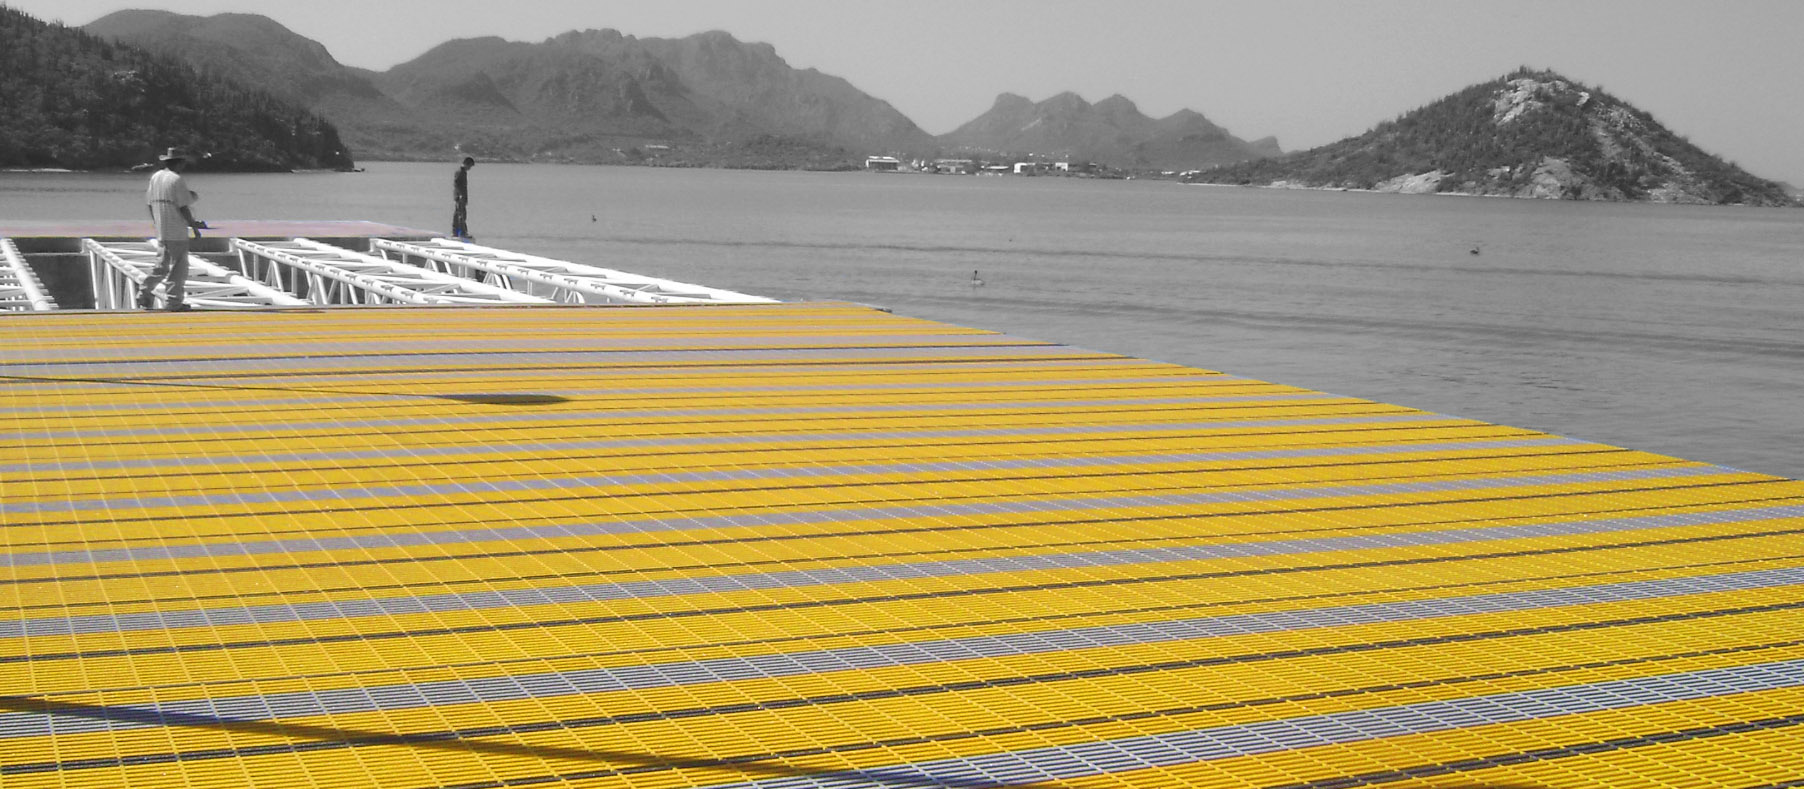 Yellow G R P Pultruded Grating F R P Dock Deck